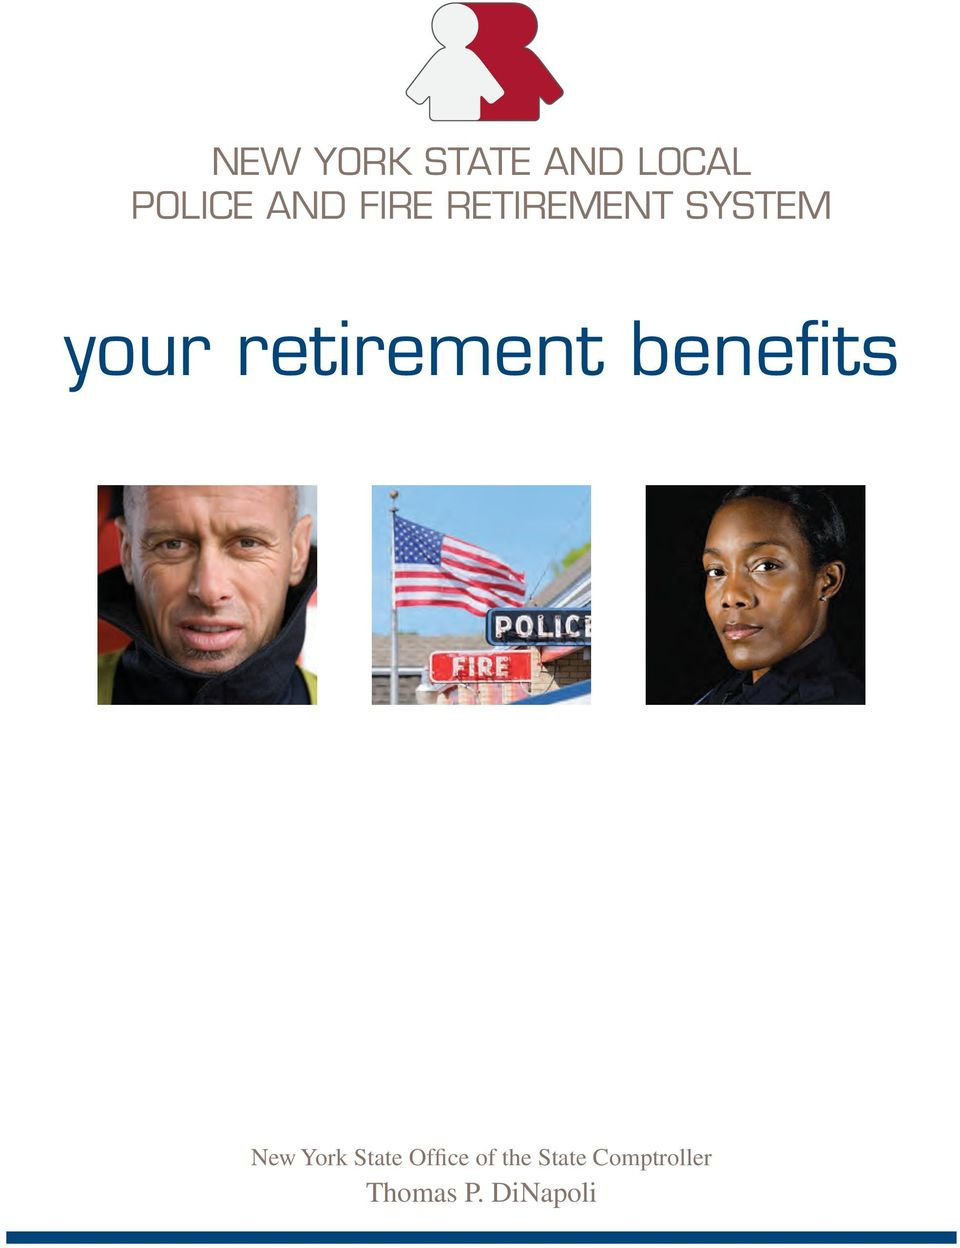 retirement benefits New York State